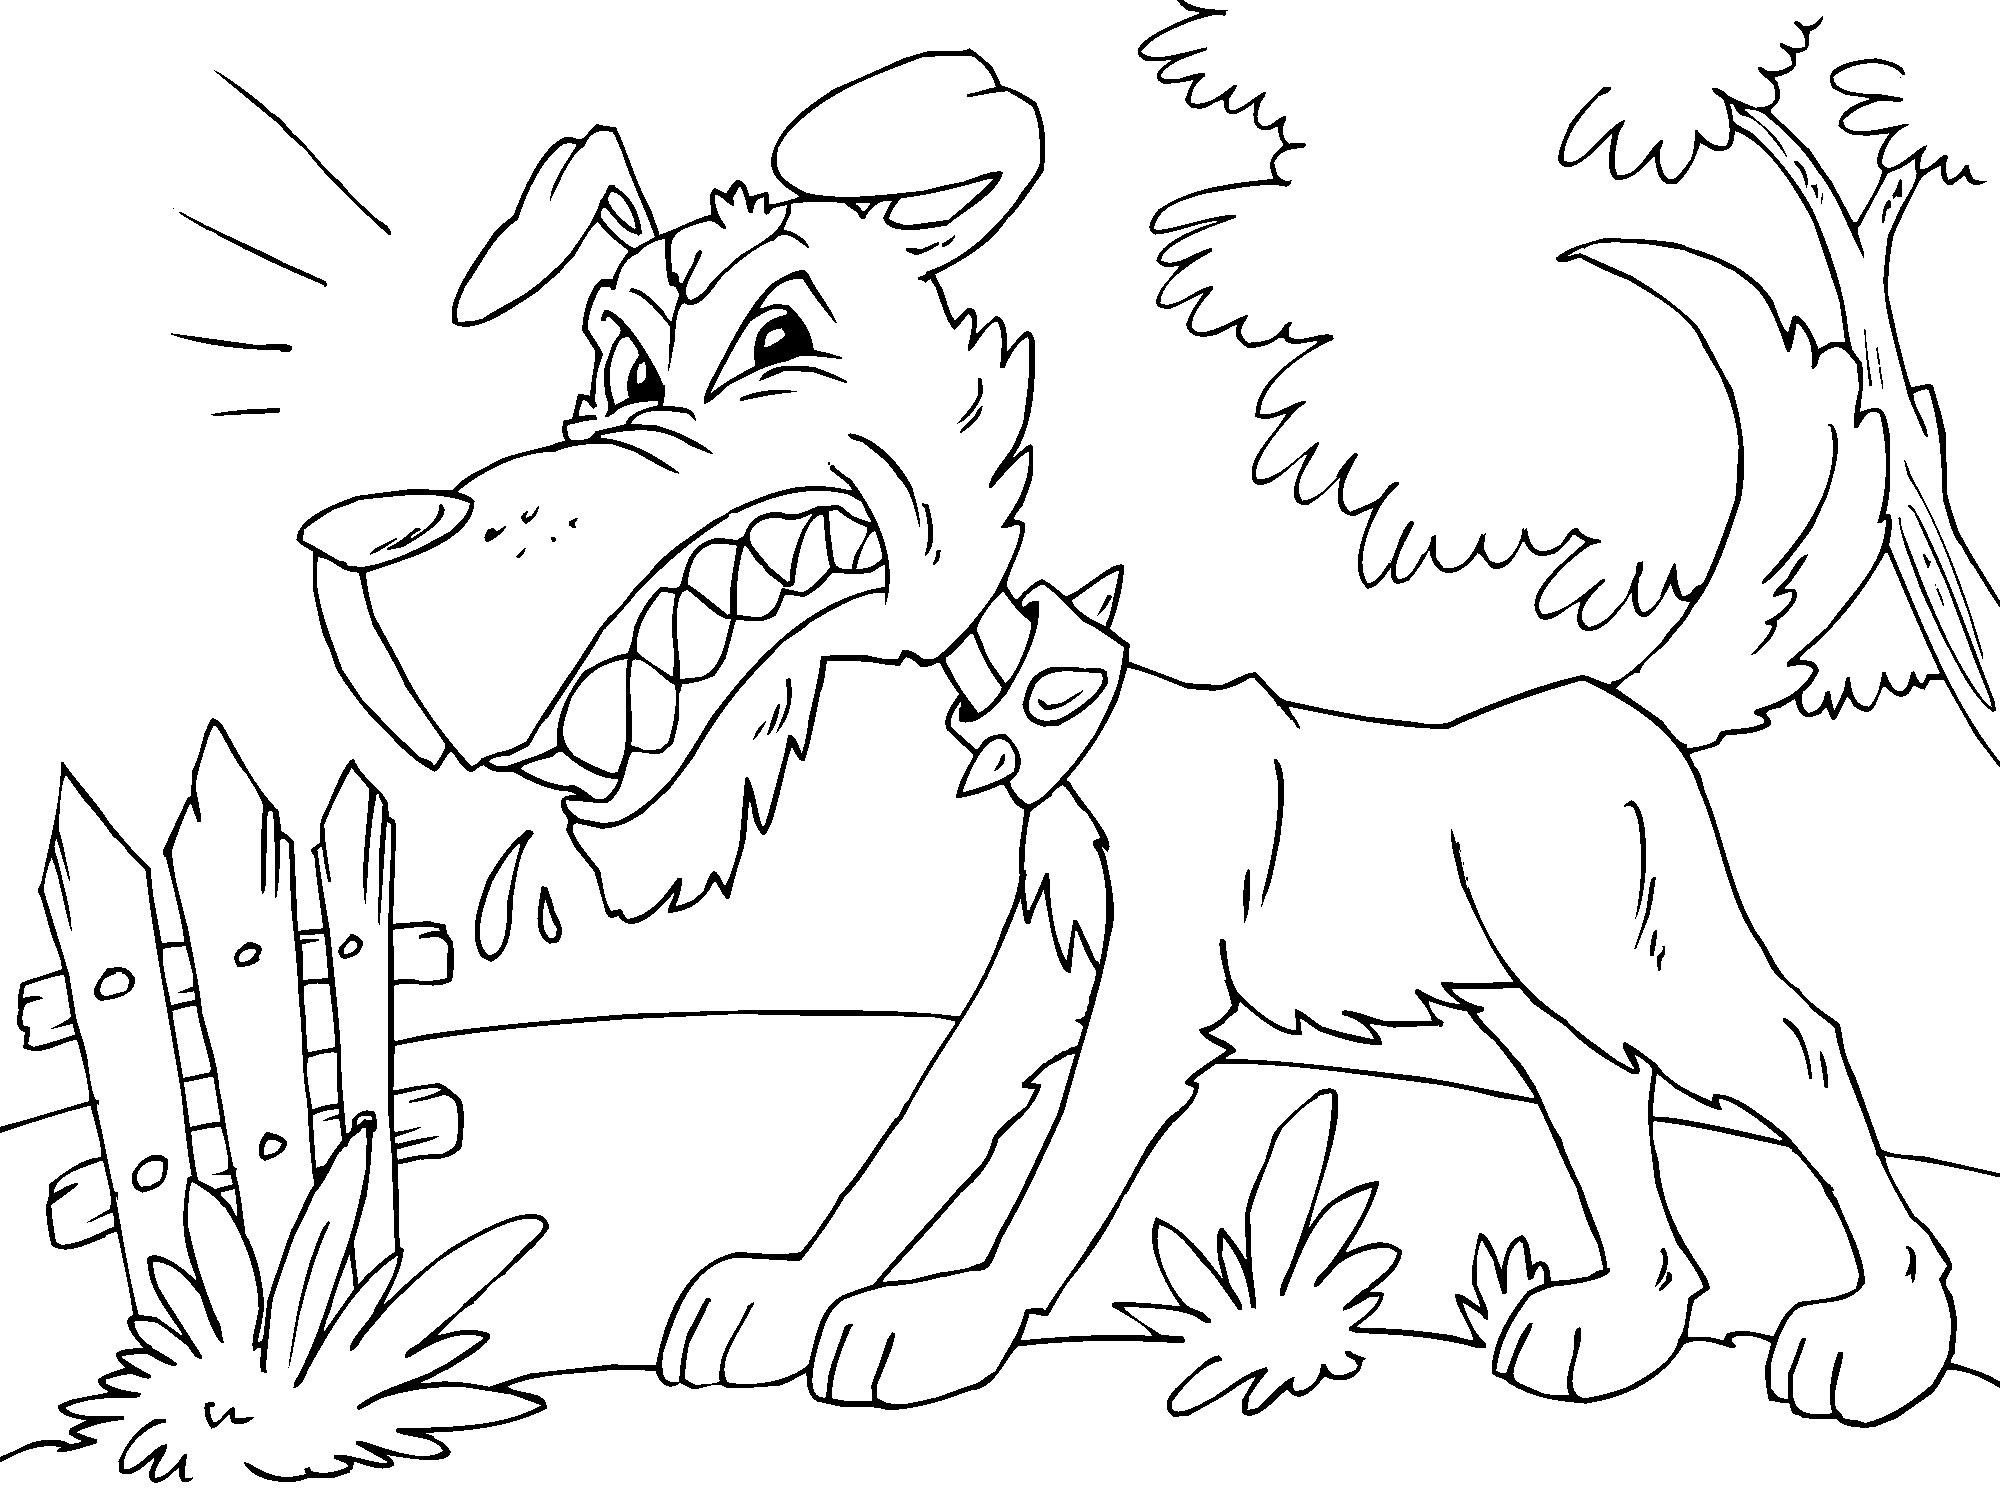 Simple Dog coloring page : Angry dog !